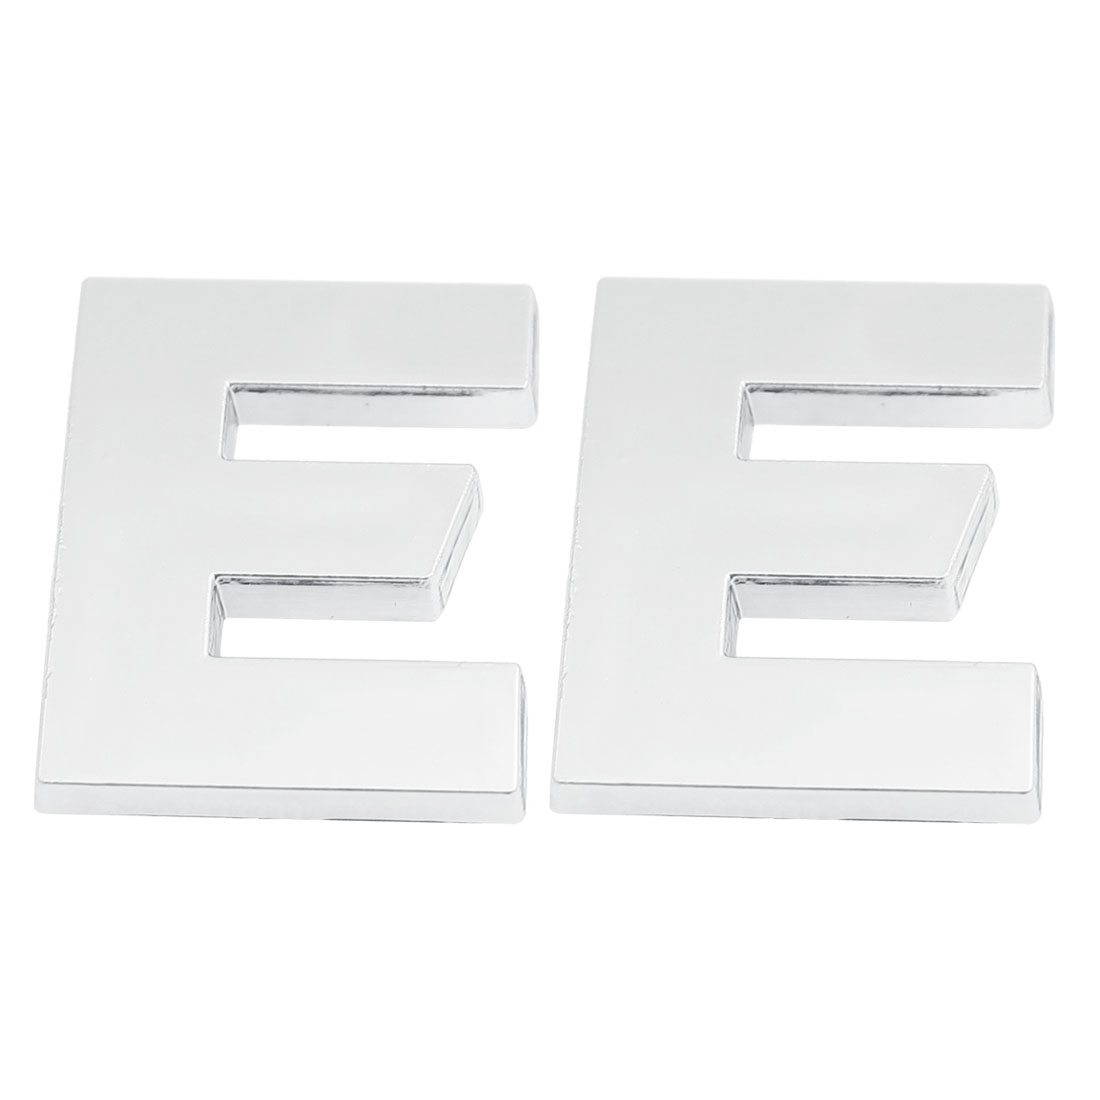 2 x Letter E 3D Emblem Motorcycle Car Auto Badge Sticker Decal Silver Tone